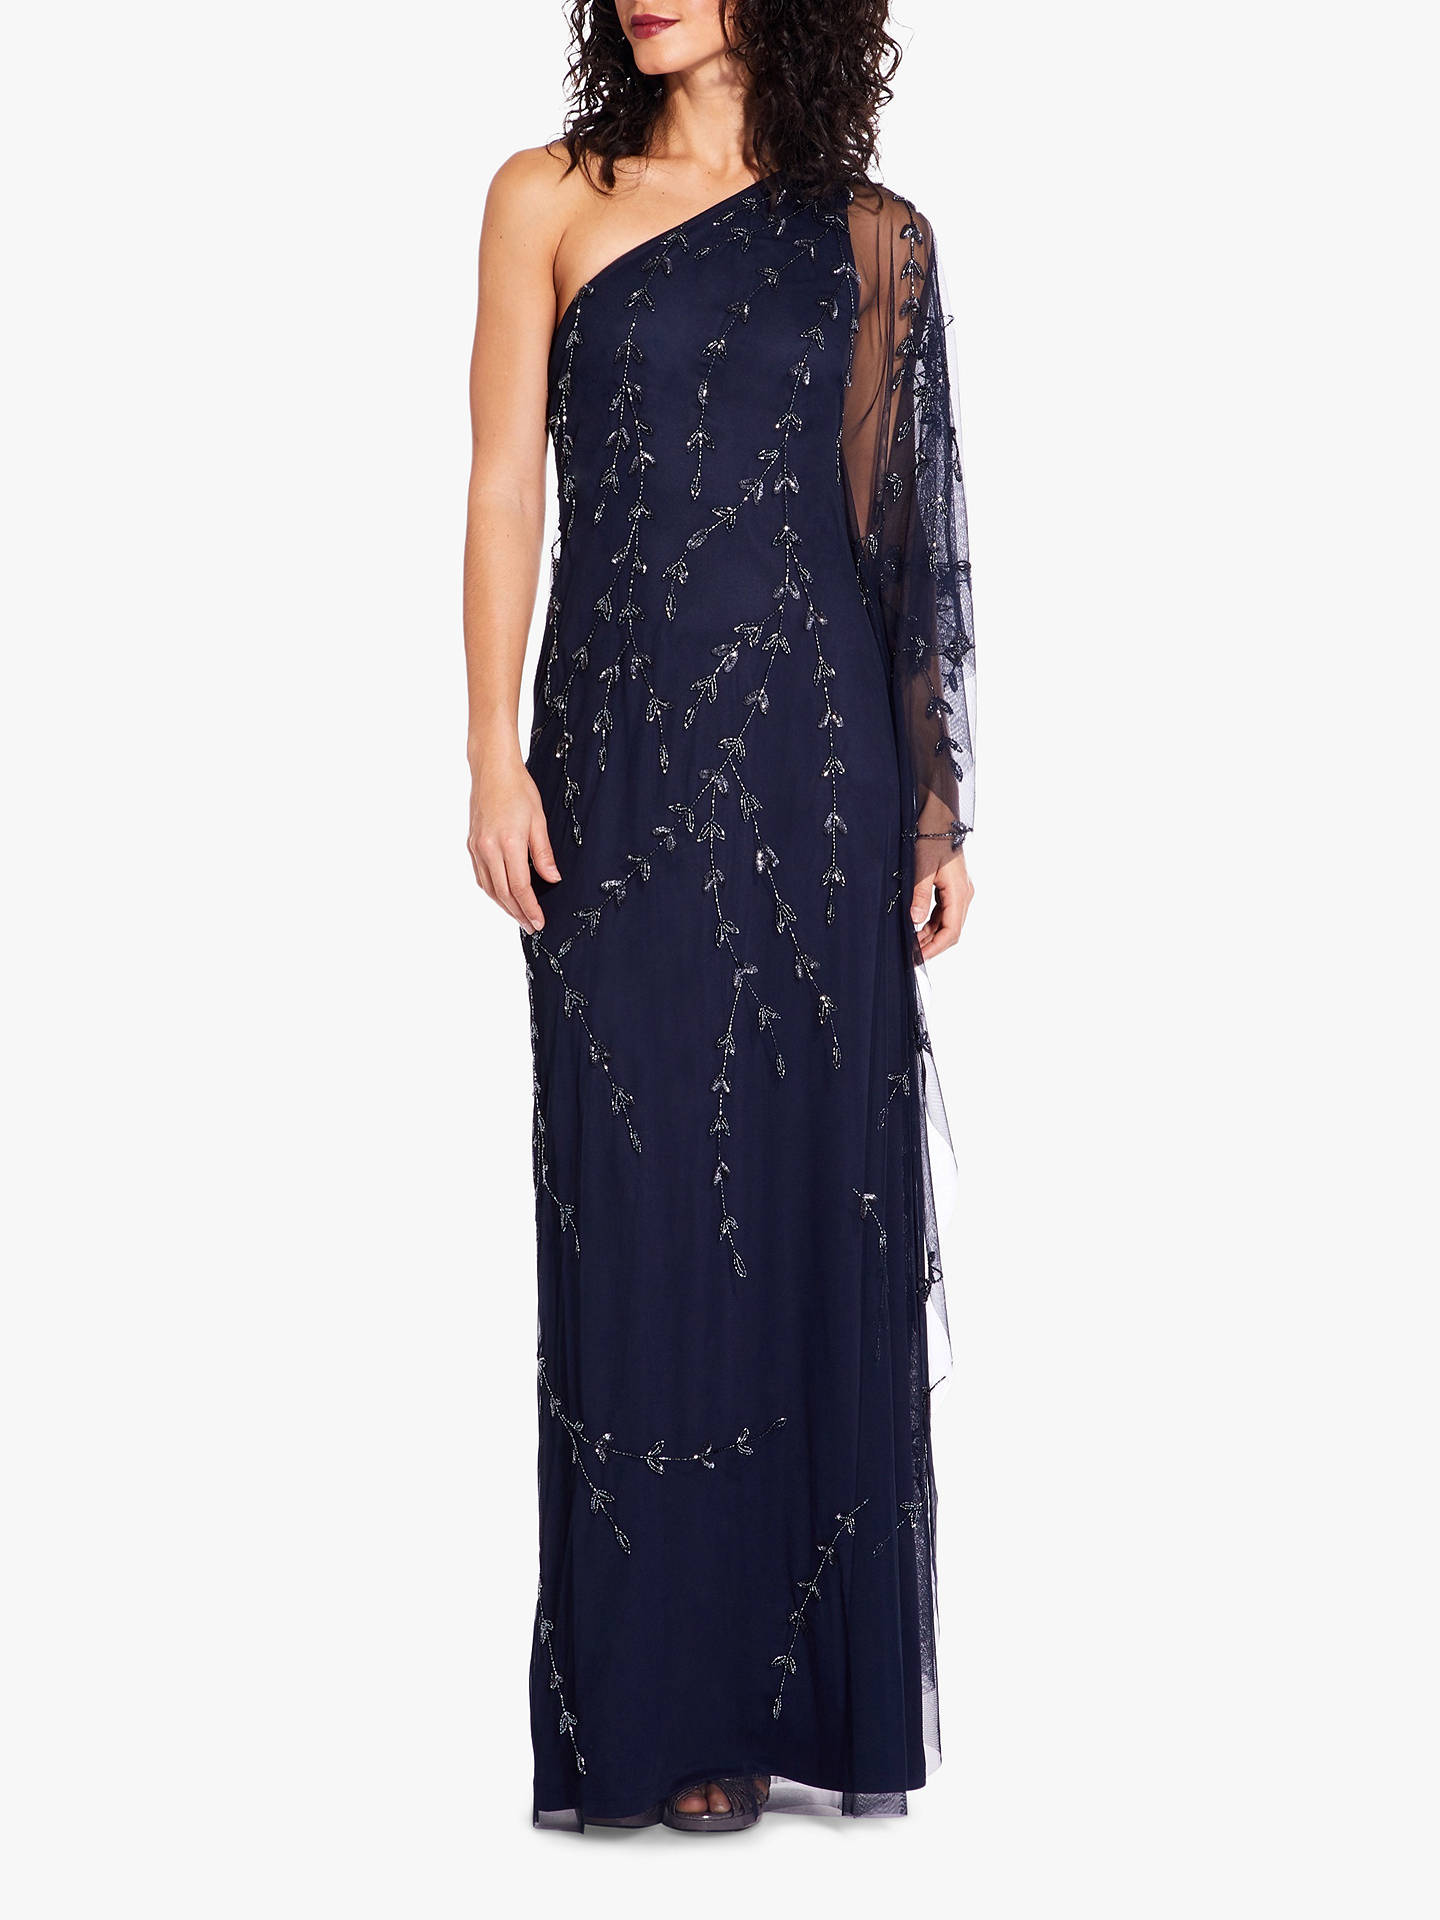 a4e775739312d Buy Adrianna Papell One Shoulder Kaftan Maxi Dress, Midnight, 8 Online at  johnlewis.